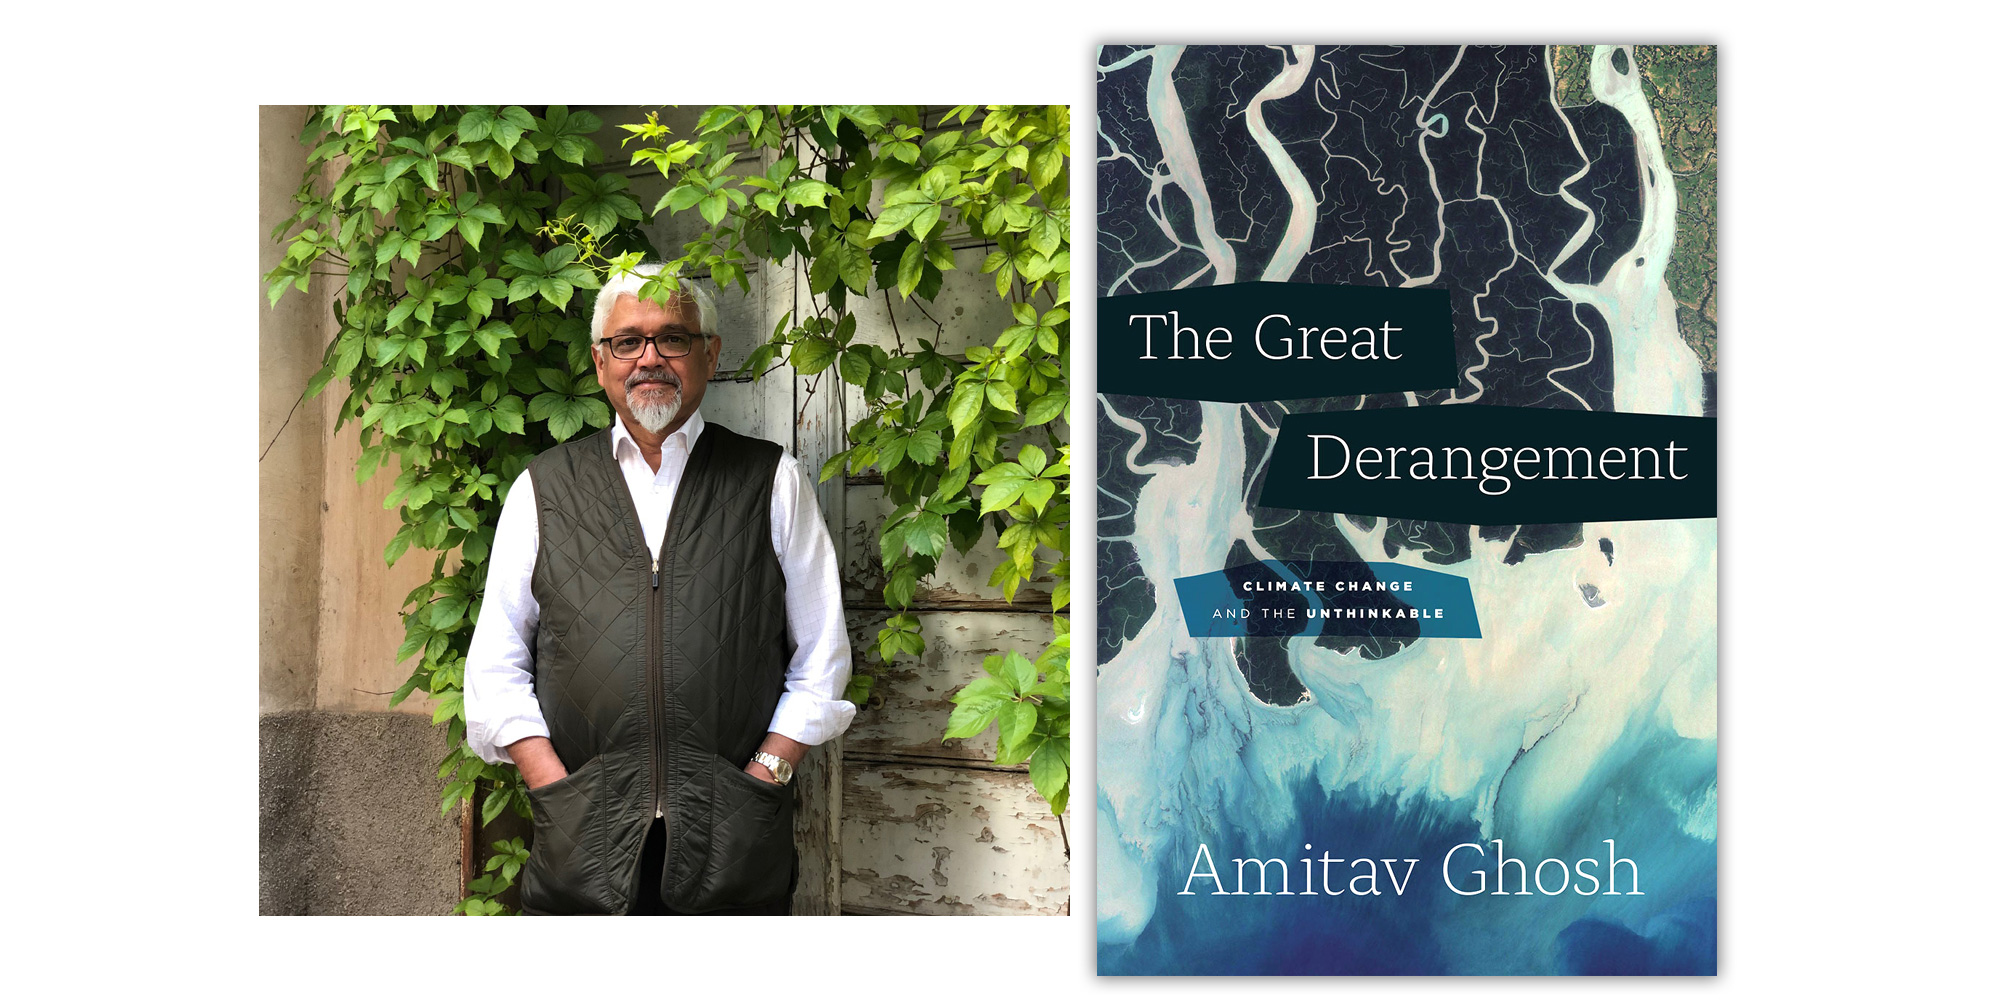 The Great Derangement book cover with author photo of Amitav Ghosh